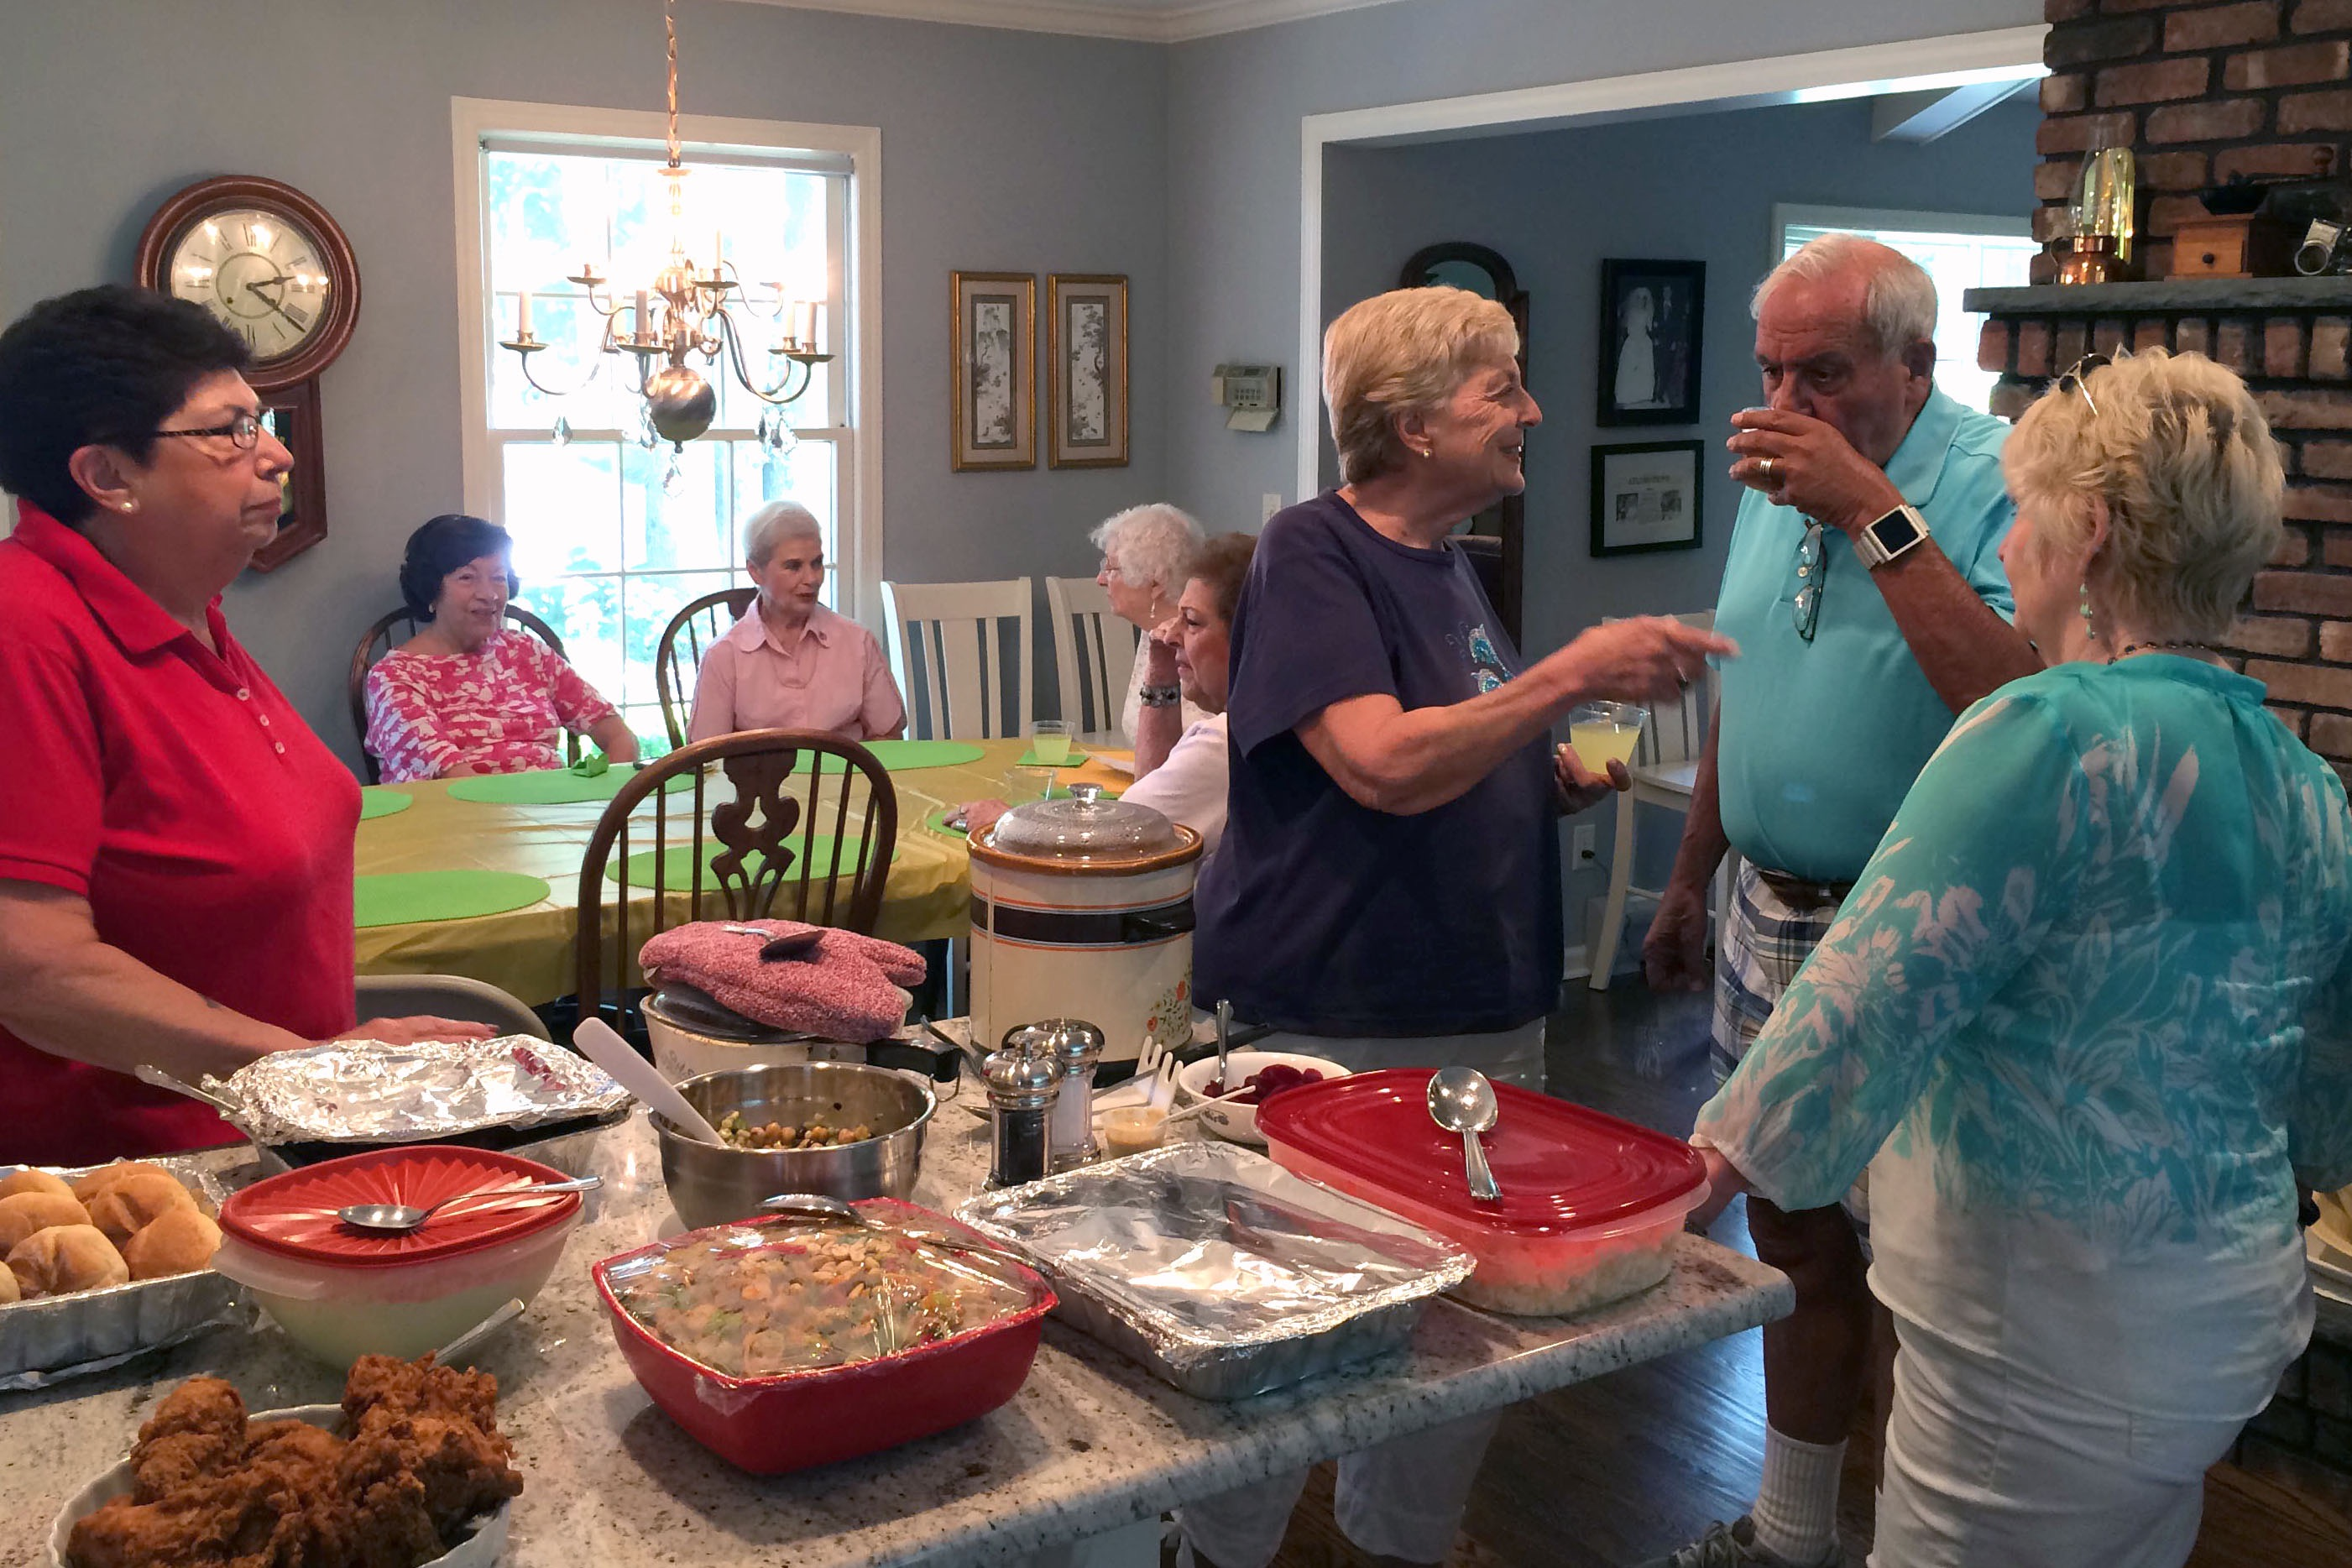 Tina Pellicciari, Bev Walsh, Joel Katz and Pat Bernius socialize at the picnic while Kathy Mucignat, Marge Detweiler, Helen Mekita and Ann Nardo catch up on news. Kathy, Club President from 2007-2009, and her husband, Al, visited Ramsey from their new home in South Carolina.